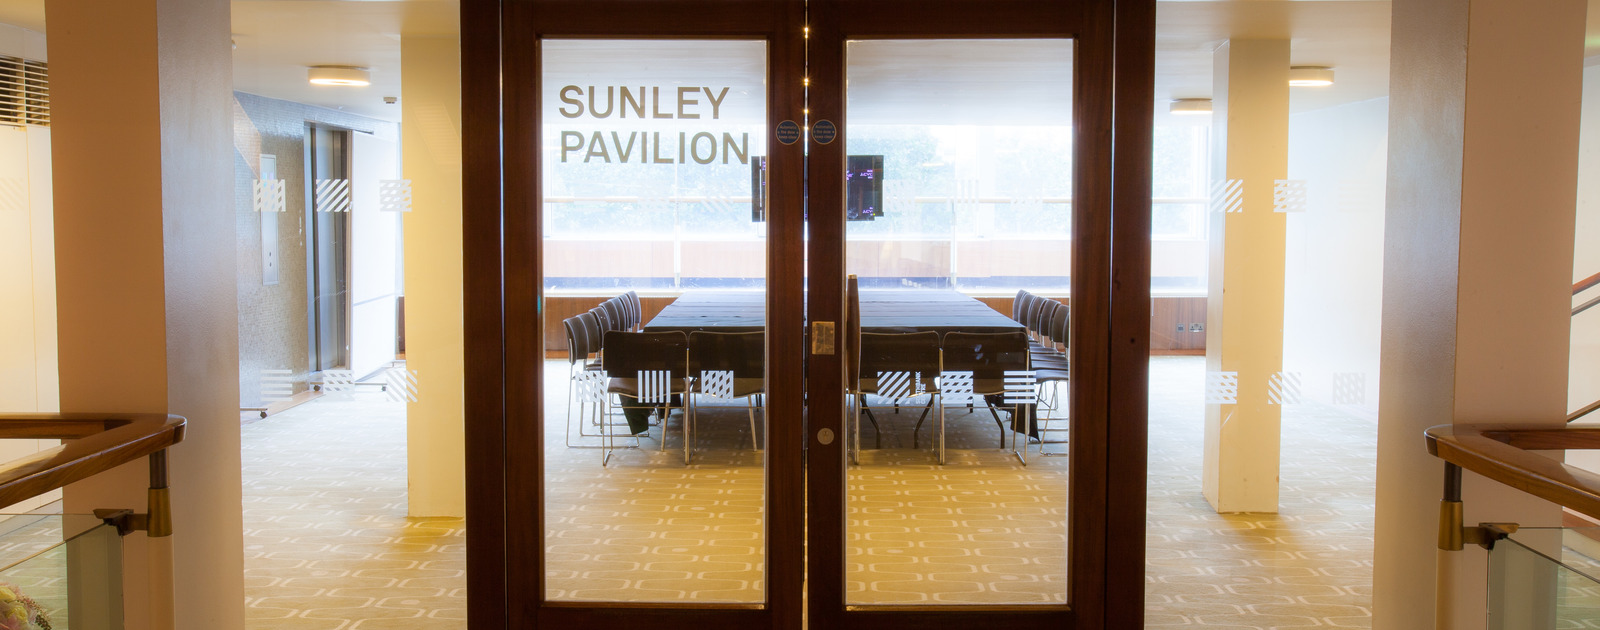 View of the Sunley Pavilion at the Southbank Centre